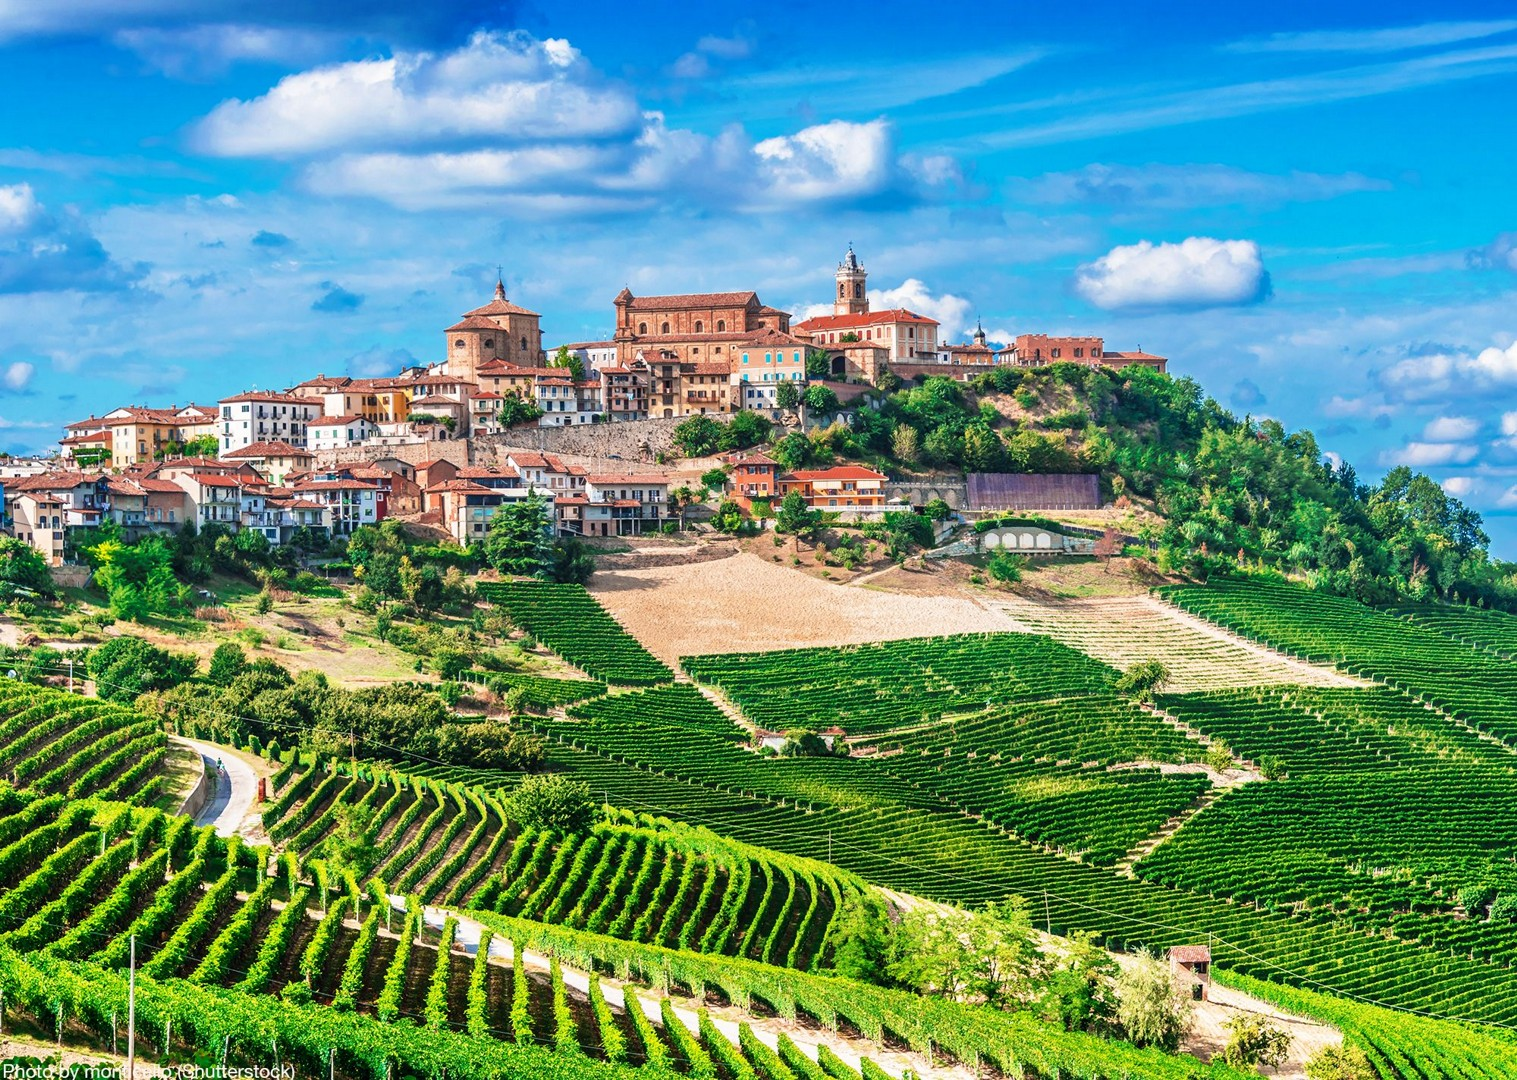 piemonte-italy-self-guided-cycling-holiday-explore-on-bikes-beautiful-towns.jpg - Italy - Piemonte - Vineyards and Views - Self-Guided Leisure Cycling Holiday - Leisure Cycling